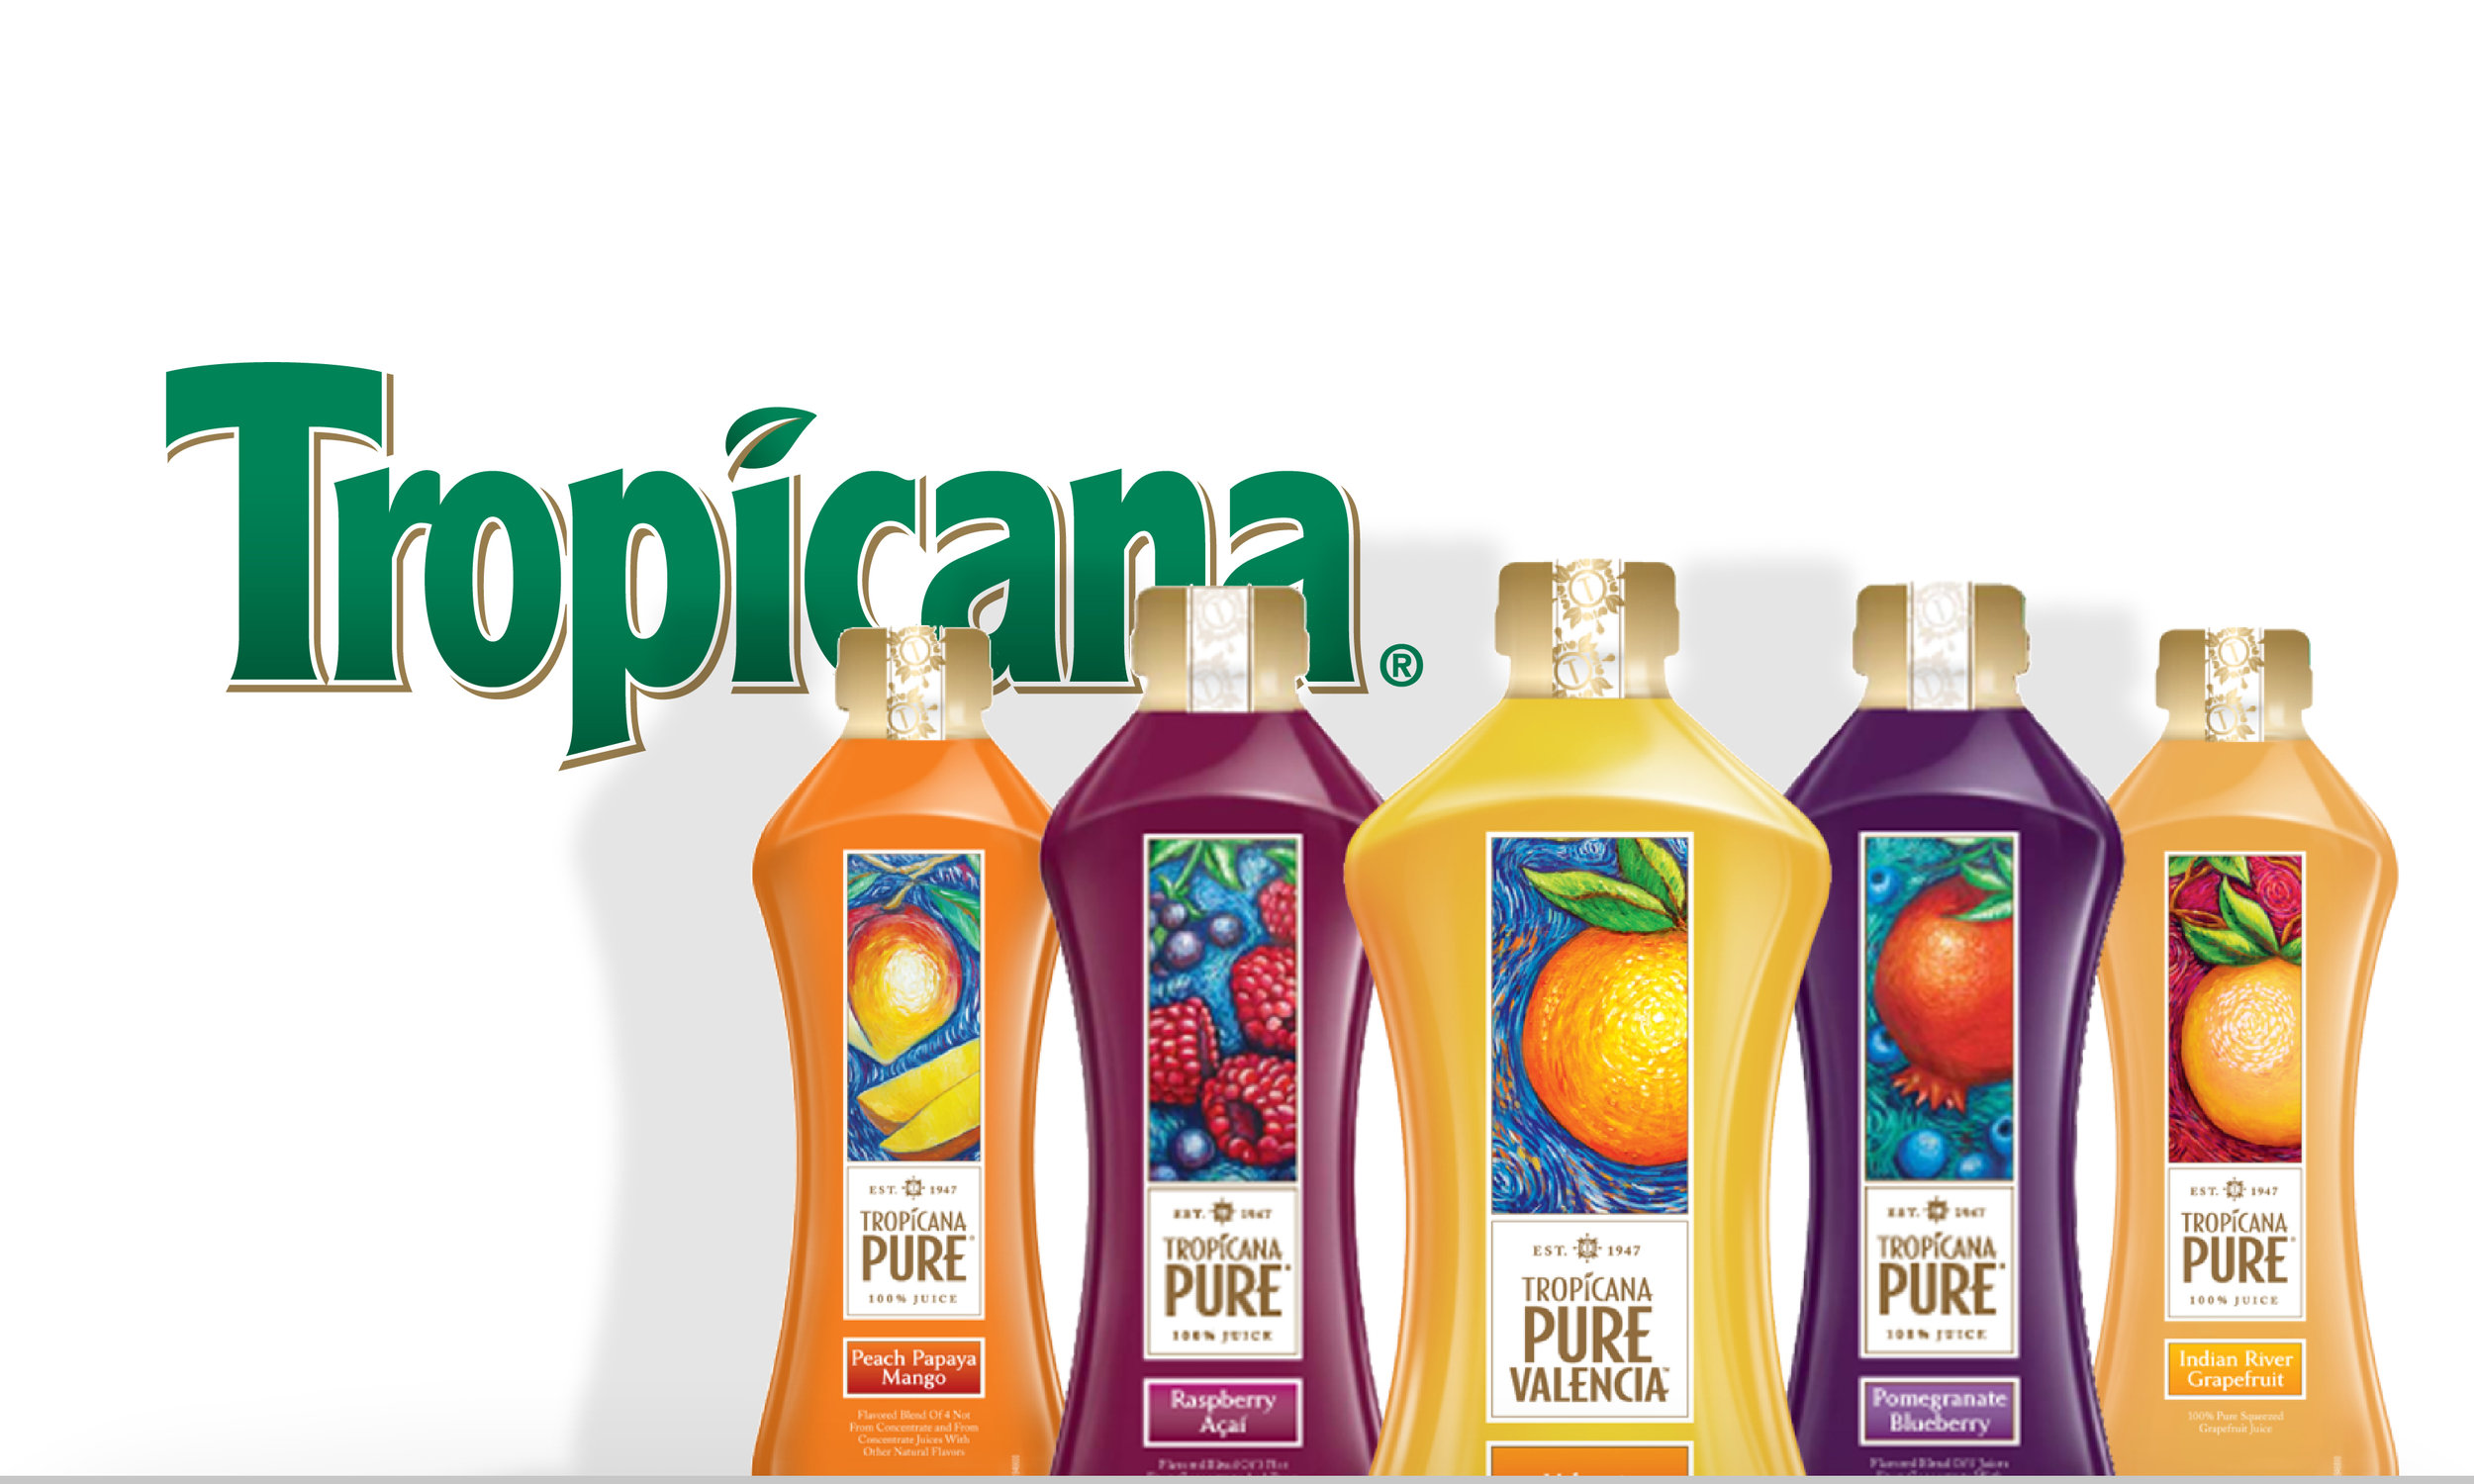 Tropicana 3% Campaign Ideas